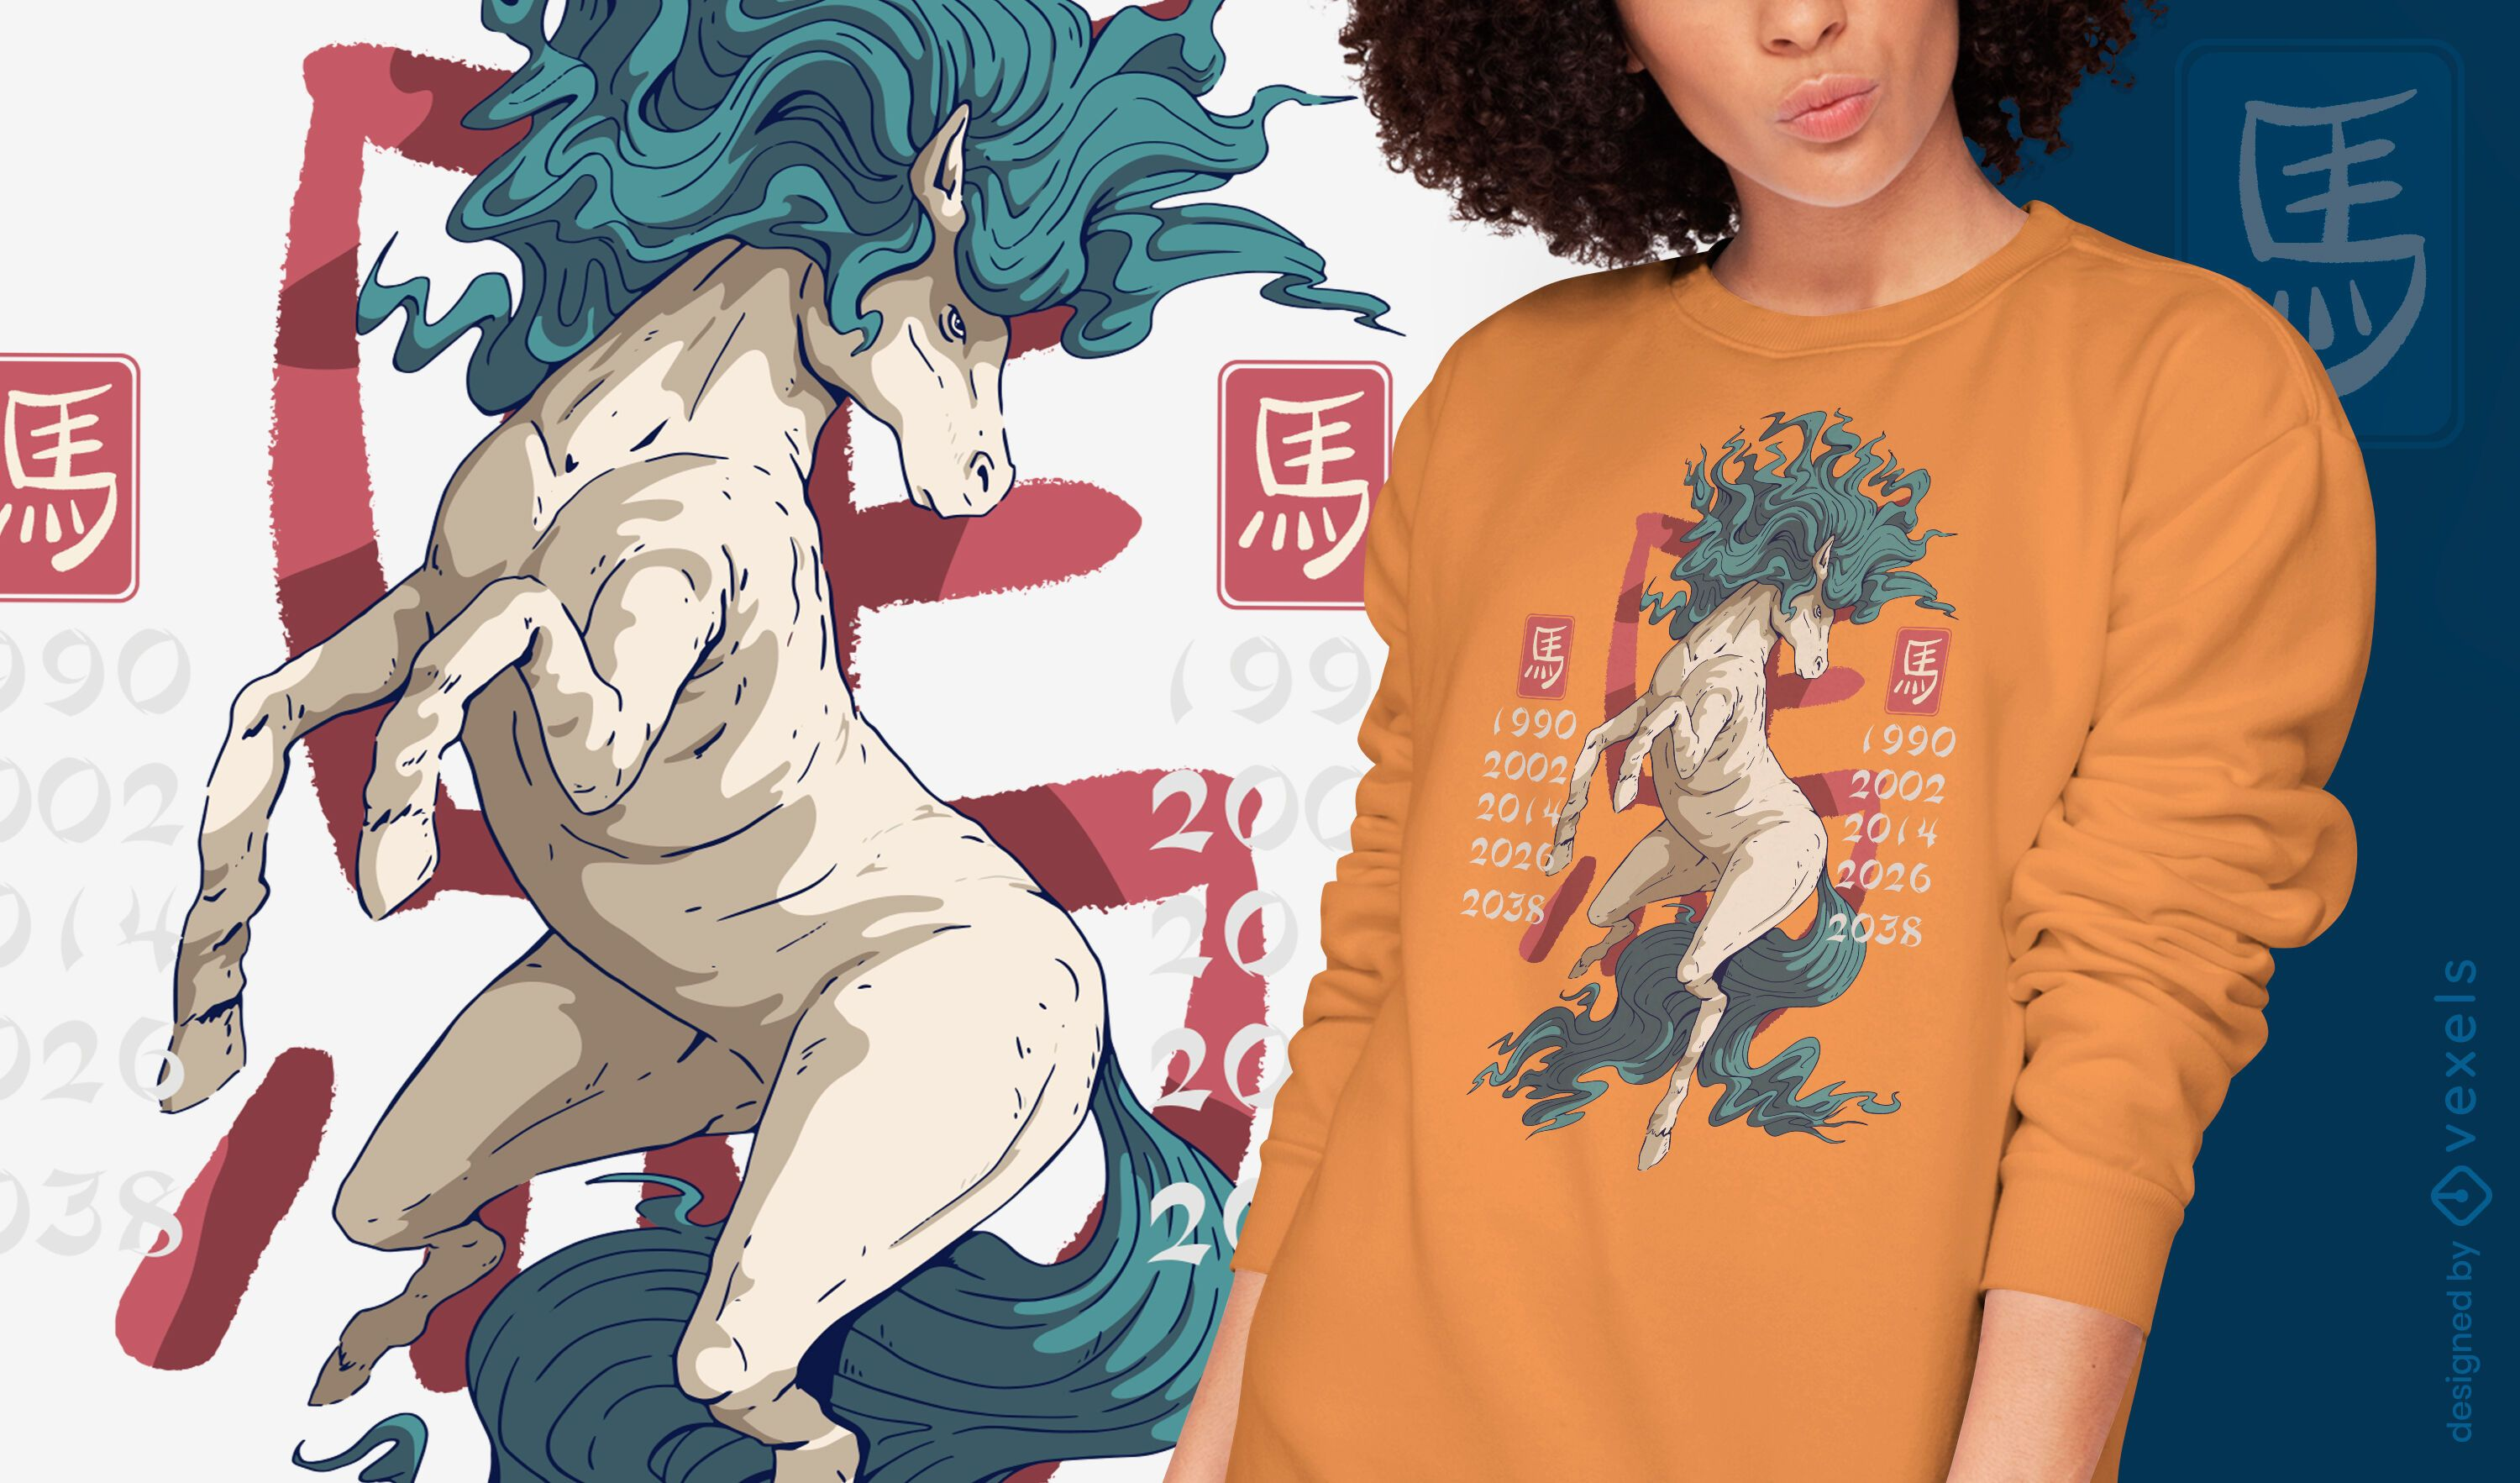 Year of the horse t-shirt design